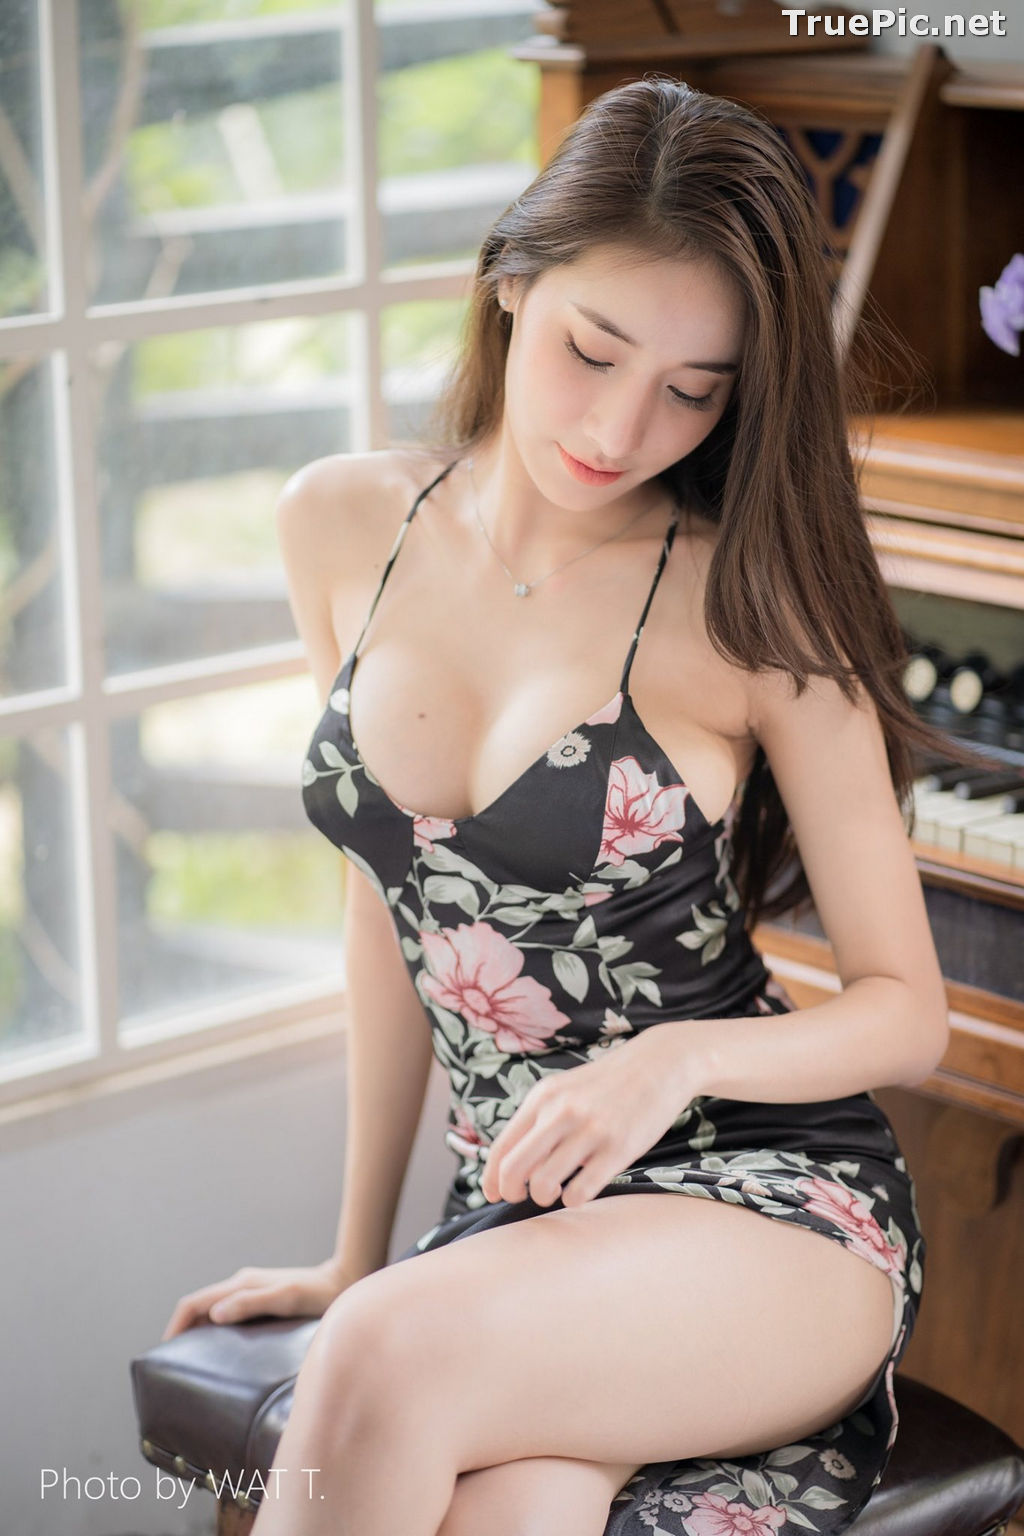 Image Thailand Beautiful Model - Pichana Yoosuk - Only MooK - TruePic.net - Picture-3